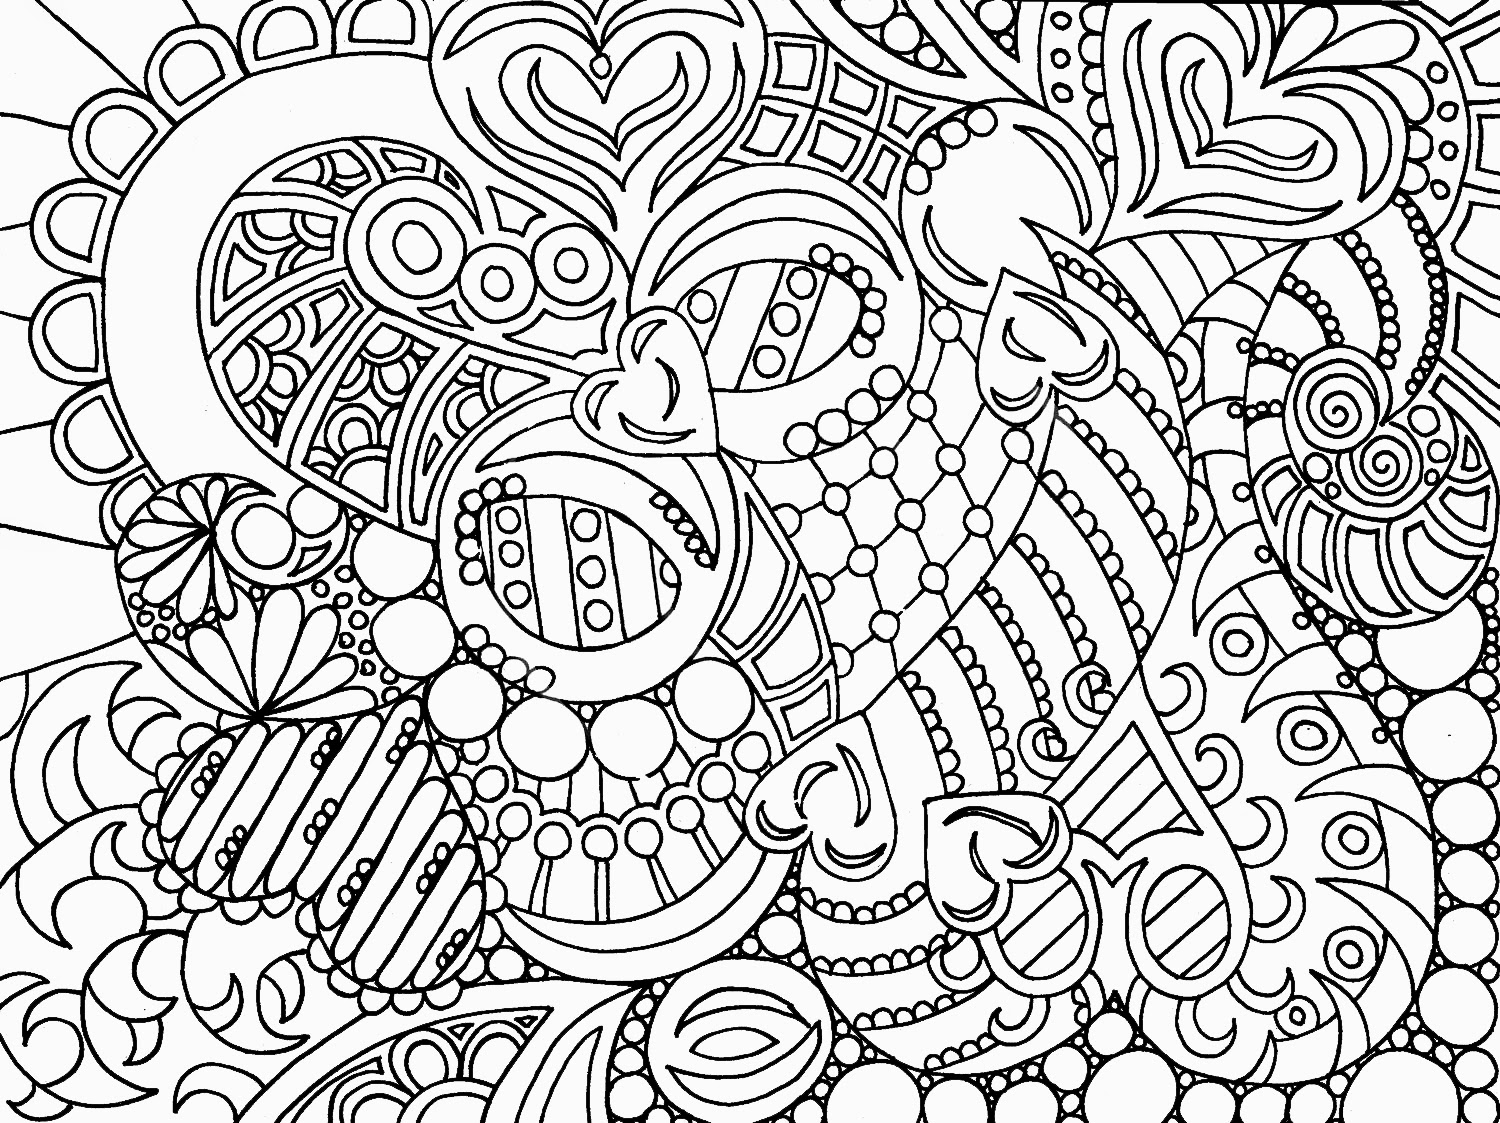 modern art coloring pages | coloring pages for kids – Coloring Pages Blog